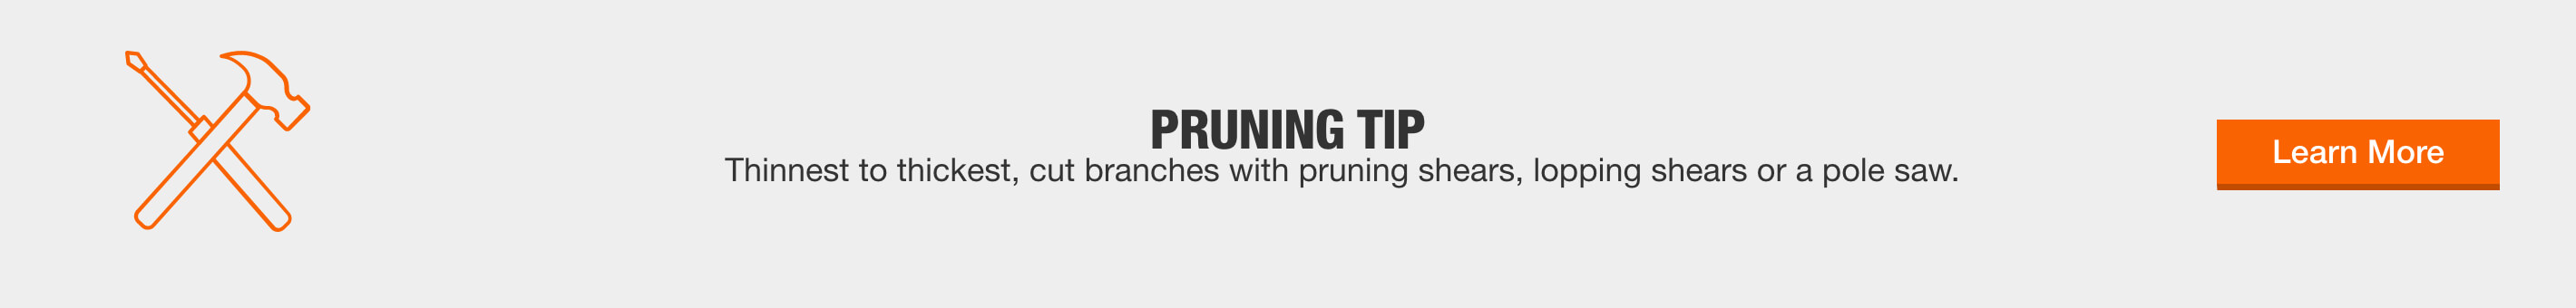 Pruning Tip - Thinnest to thickest, cut branches with pruning shears, lopping shears or a pole saw. Learn More